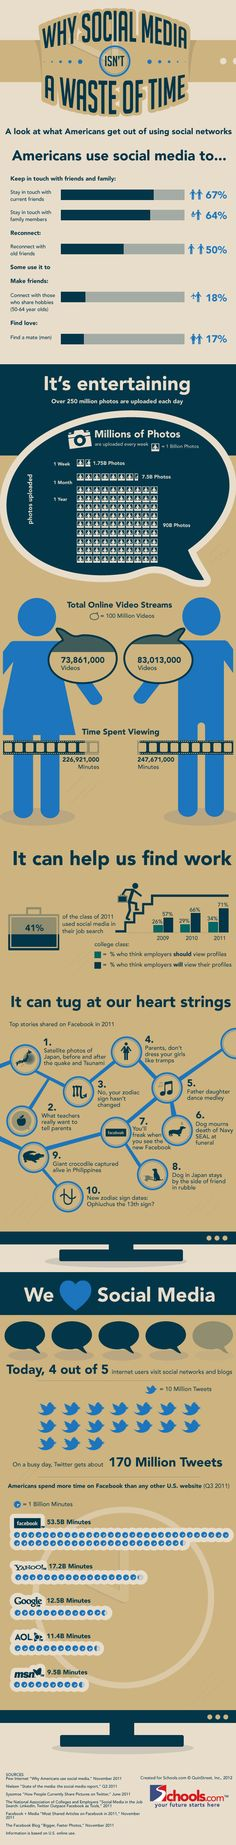 Why Social Media ISN'T such a waste of time infographic.